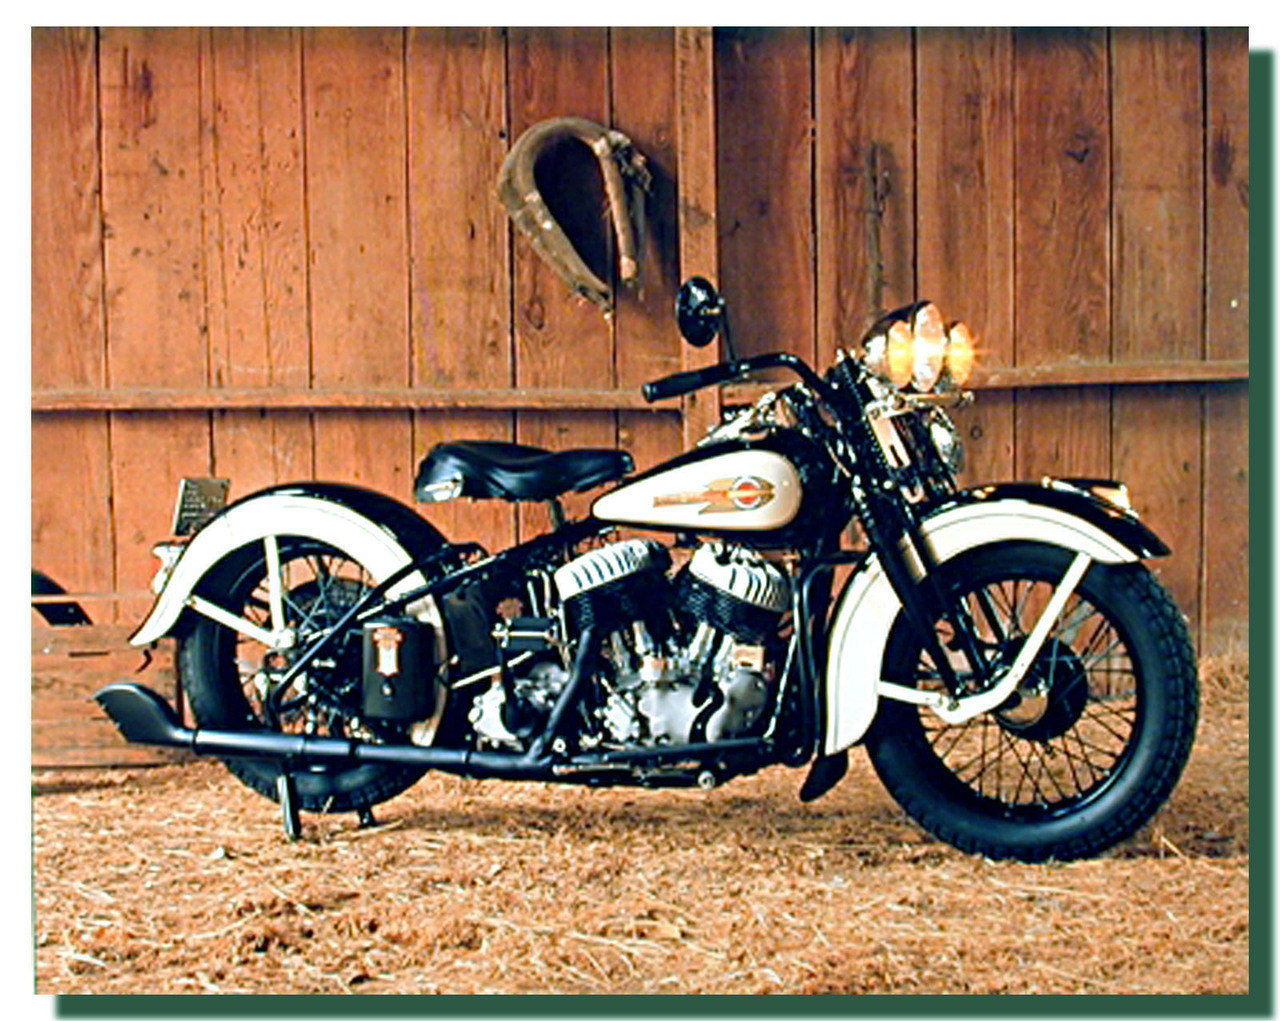 White Black Harley Flathead Motorcycle Poster Motorcycle Posters